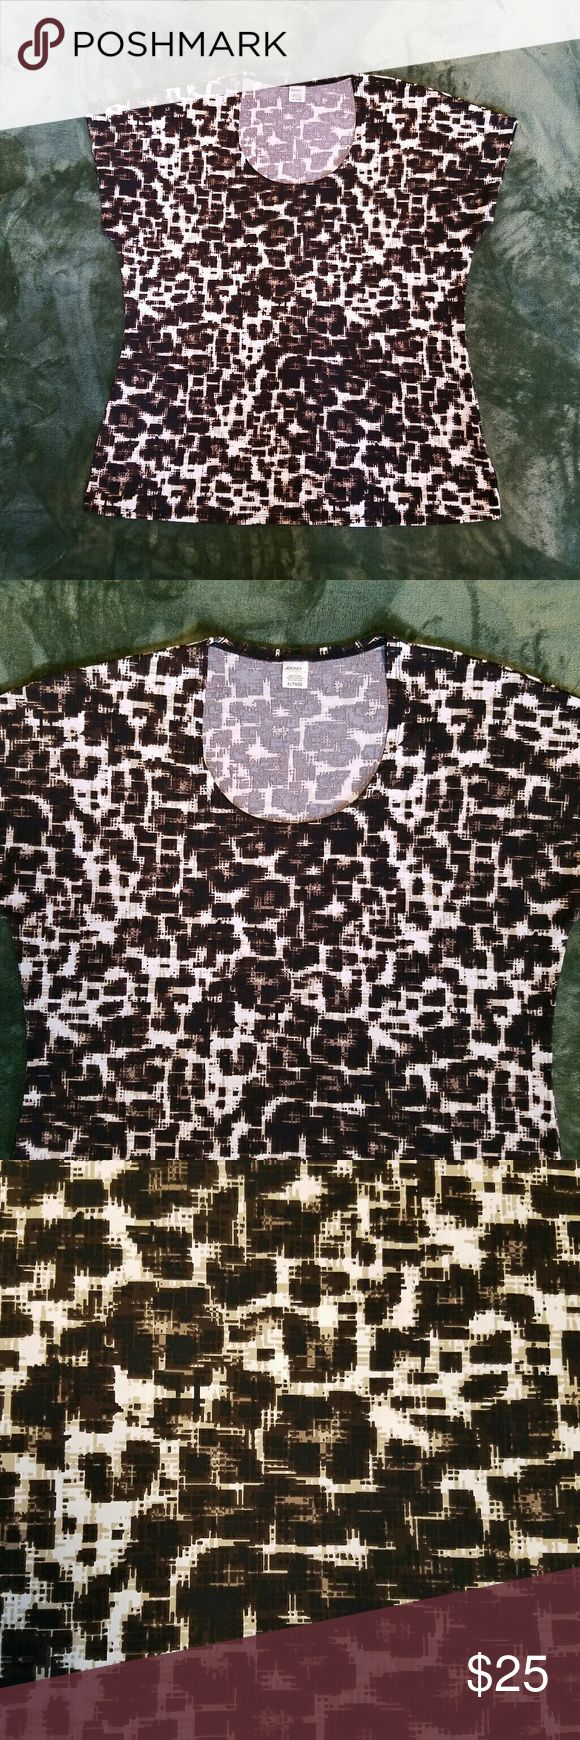 """Jockey Brown Black Beige White Pattern Top XL Soft stretchy women's cap sleeve top. Colors brown, black, beige and white  (my phone camera doesn't capture it well in my farmhouse) cross hatch abstract pattern.  Scoop neckline.  Perfect travel attire,  toss in suitcase pull out and wear. Doesn't wrinkle. No rips, stains or repairs.  Sz XL measures 44"""" bust,  26.5"""" overall length.  (Bin4) Jockey  Tops"""